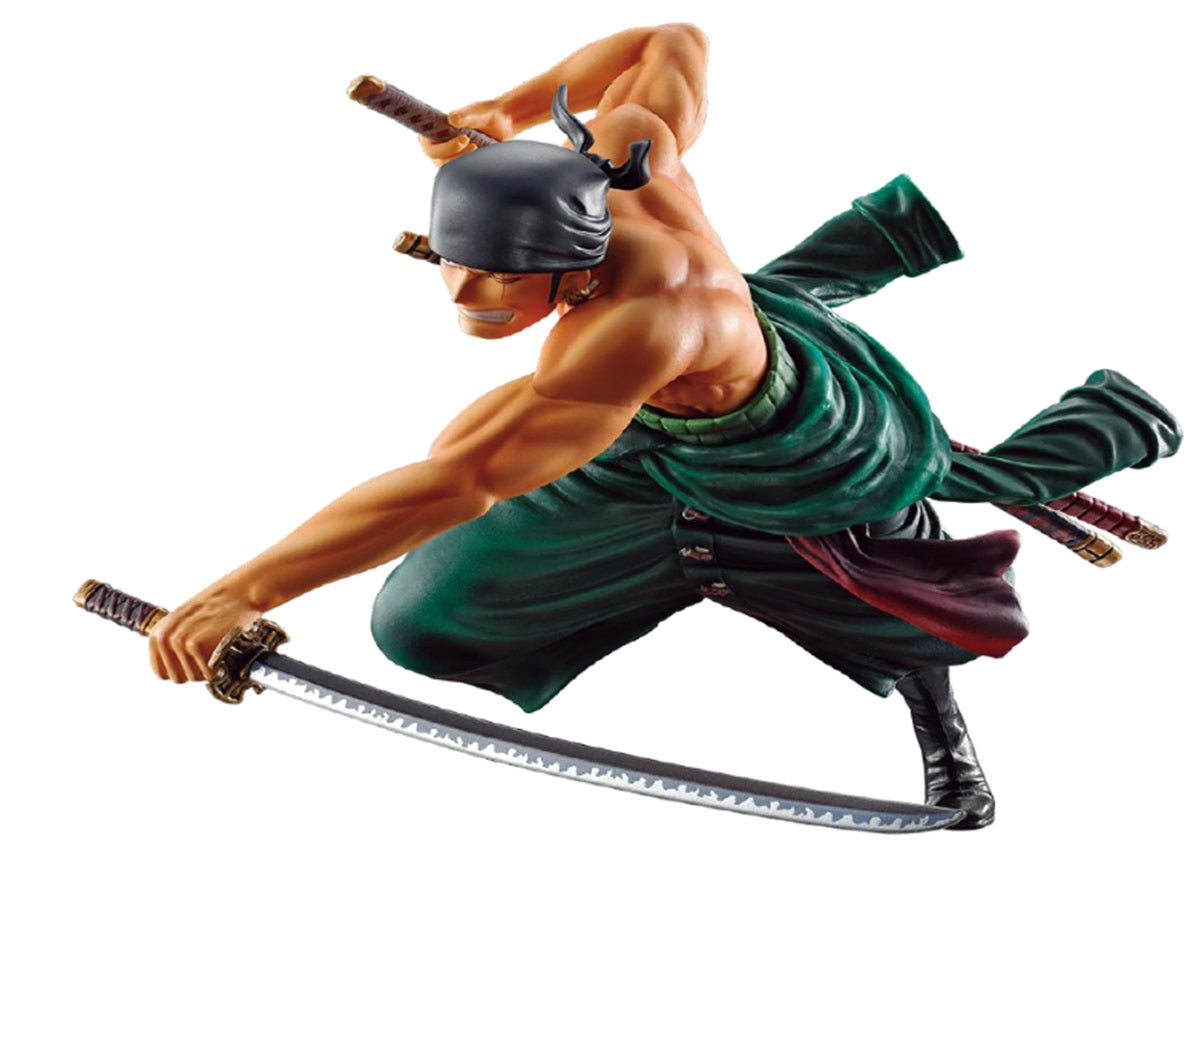 【已截訂】Banpresto ICHIBANSHO FIGURE RORONOA ZORO (BATTLE MEMORIES) PVC Figure [海外版]